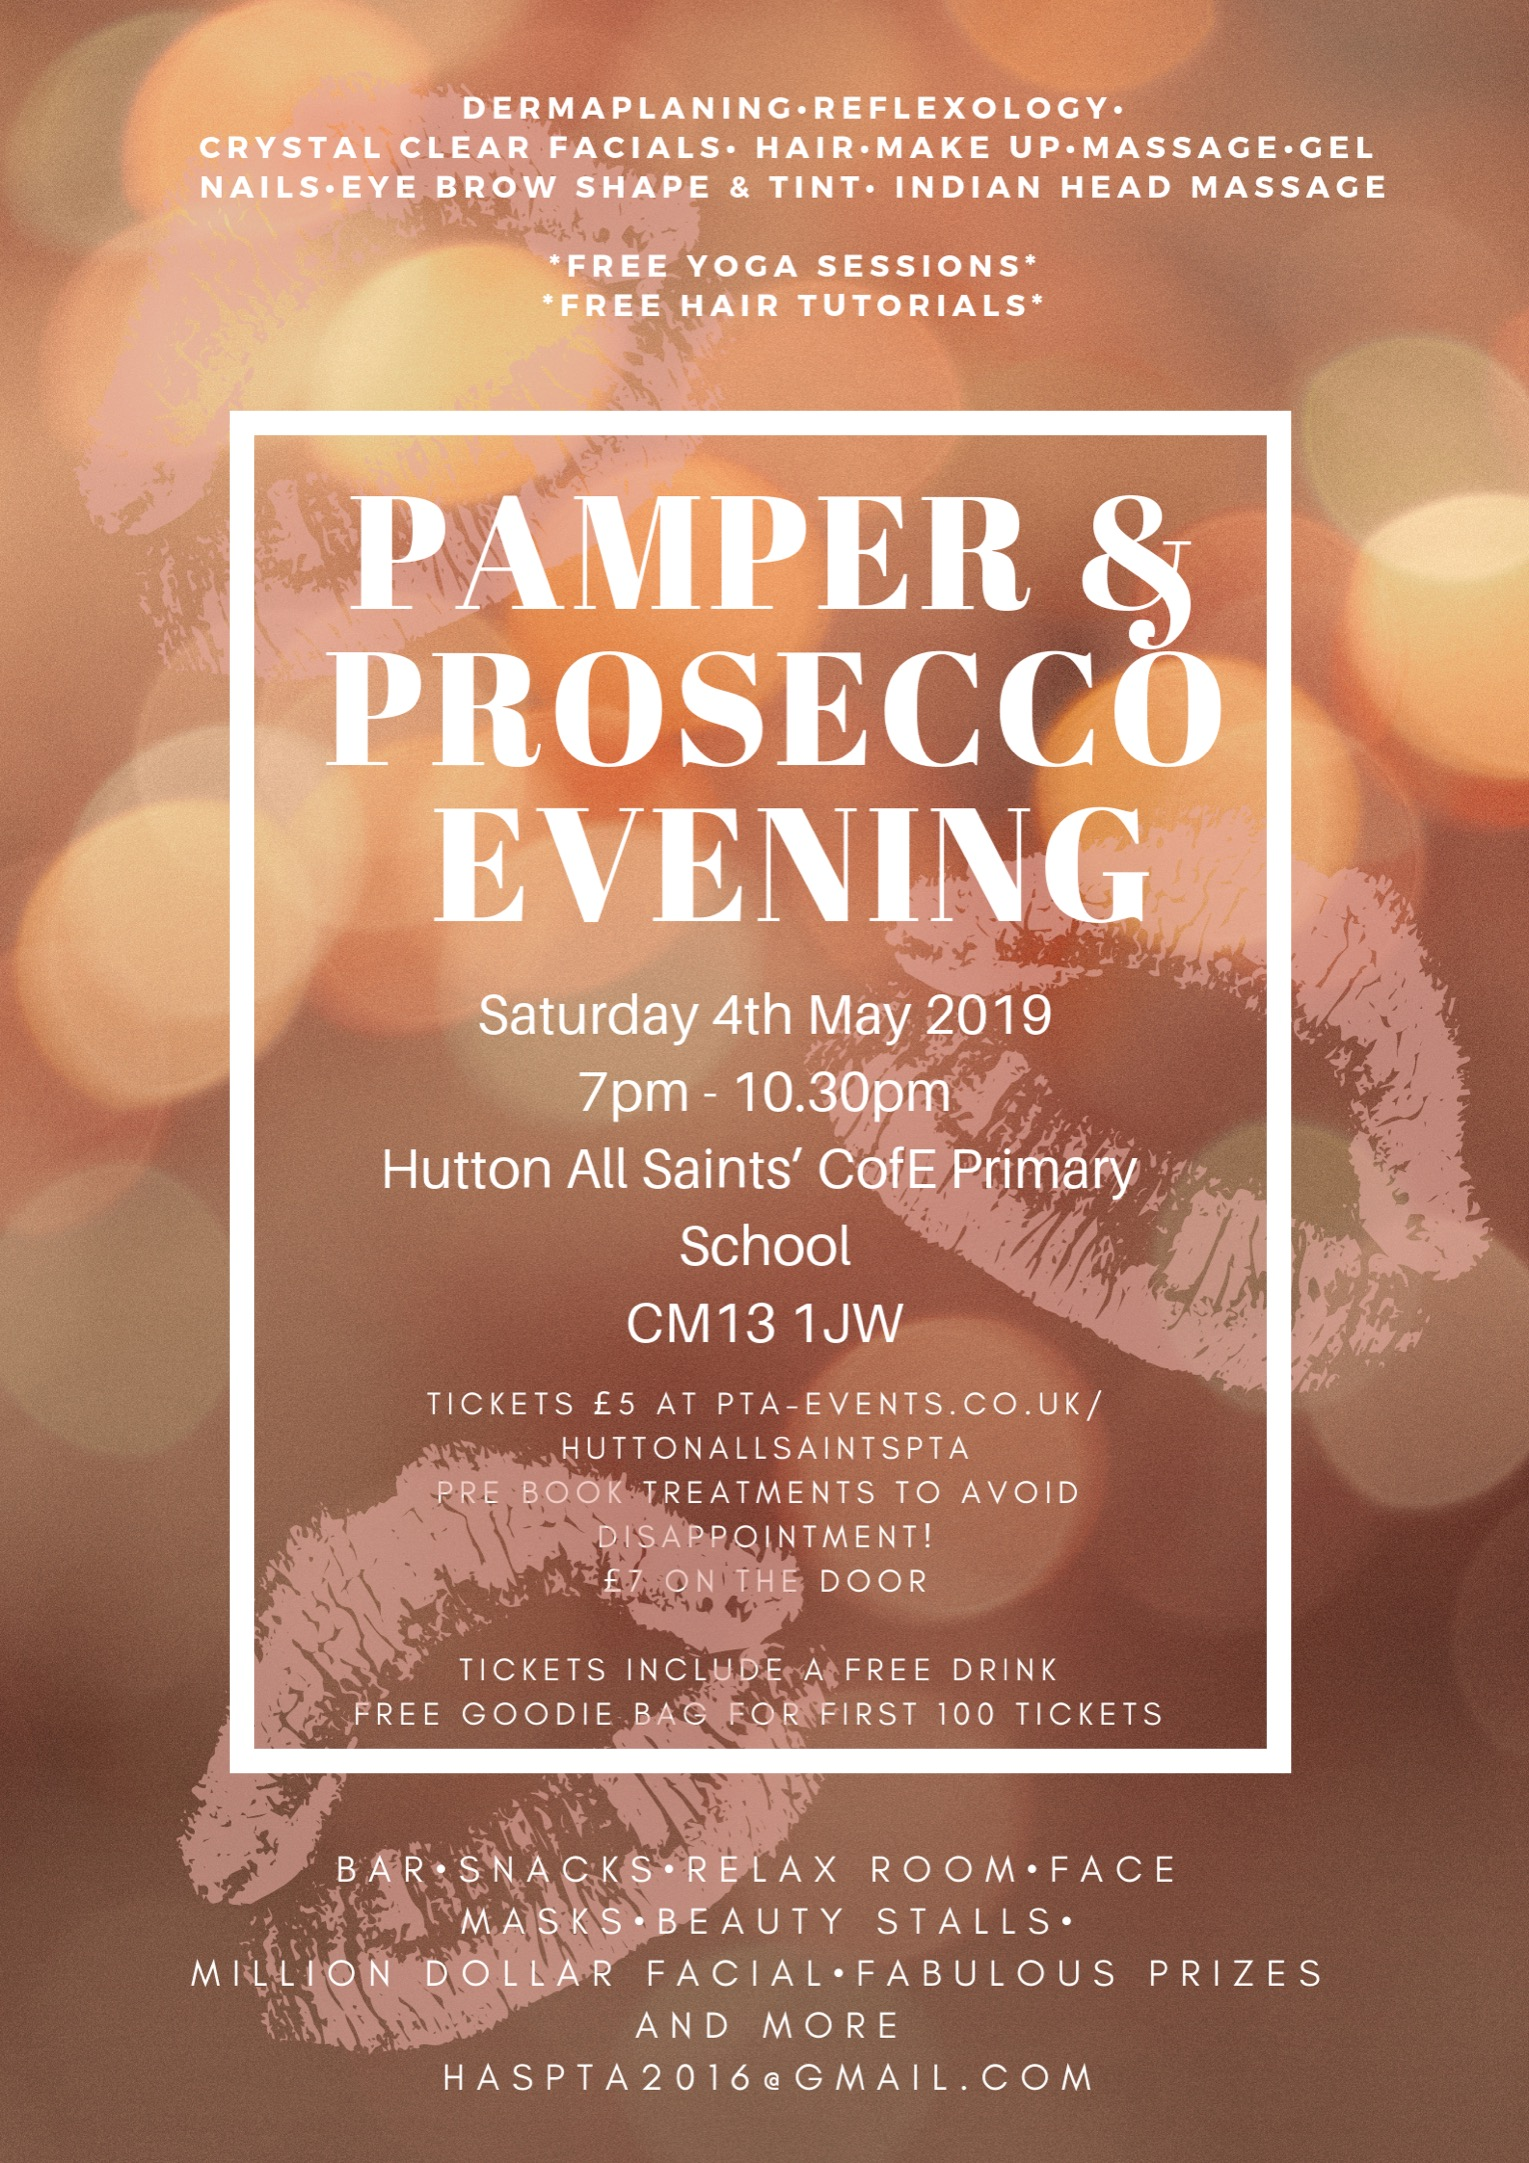 Pamper & Prosecco Evening